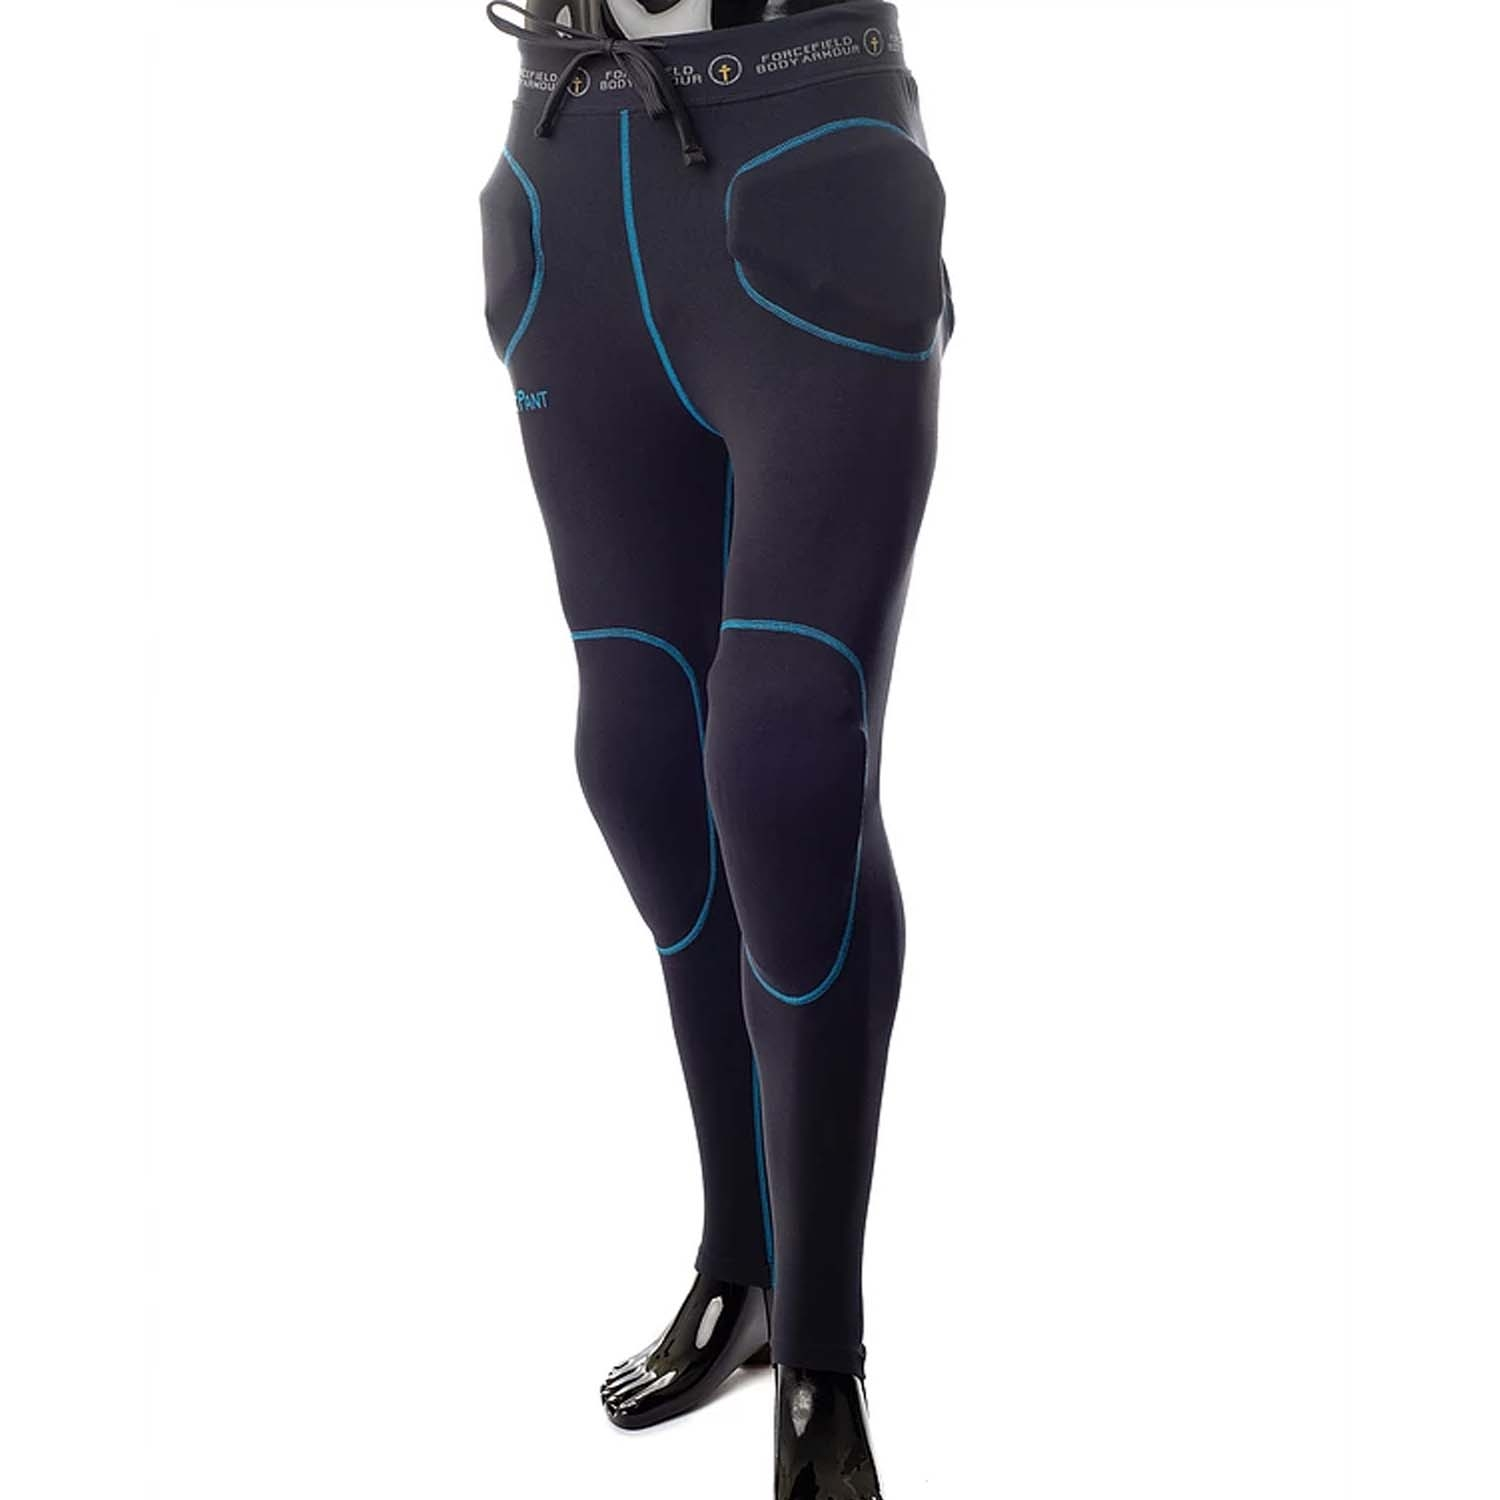 Forcefield Winter Sport Pant 1 2020